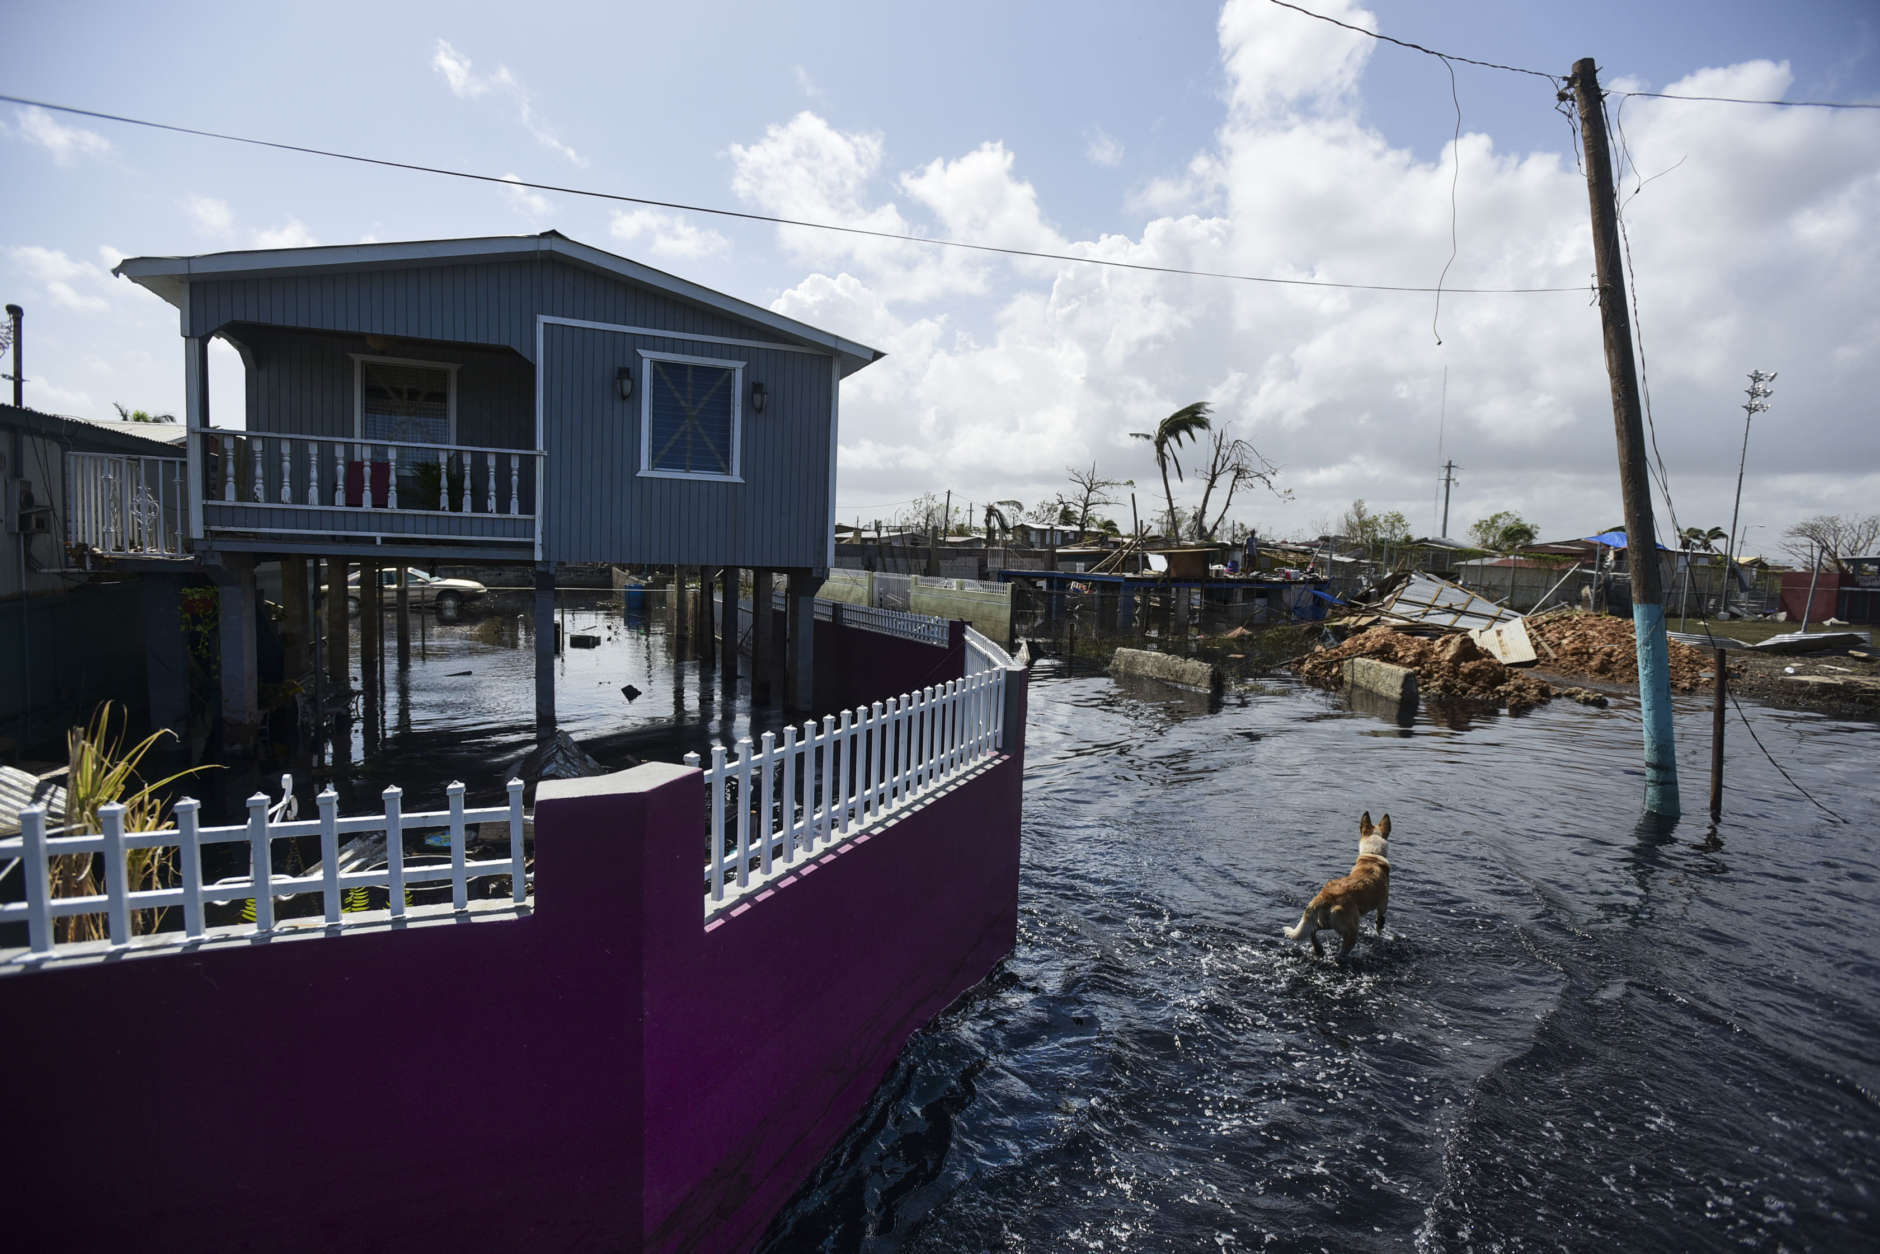 Flood water surrounds homes in the Juana Matos community one week after the passing of Hurricane Maria in Catano, Puerto Rico, Thursday, Sept. 28, 2017. The aftermath of the powerful storm has resulted in a near-total shutdown of the U.S. territory's economy that could last for weeks and has many people running seriously low on cash and worrying that it will become even harder to survive on this storm-ravaged island. (AP Photo/Carlos Giusti)